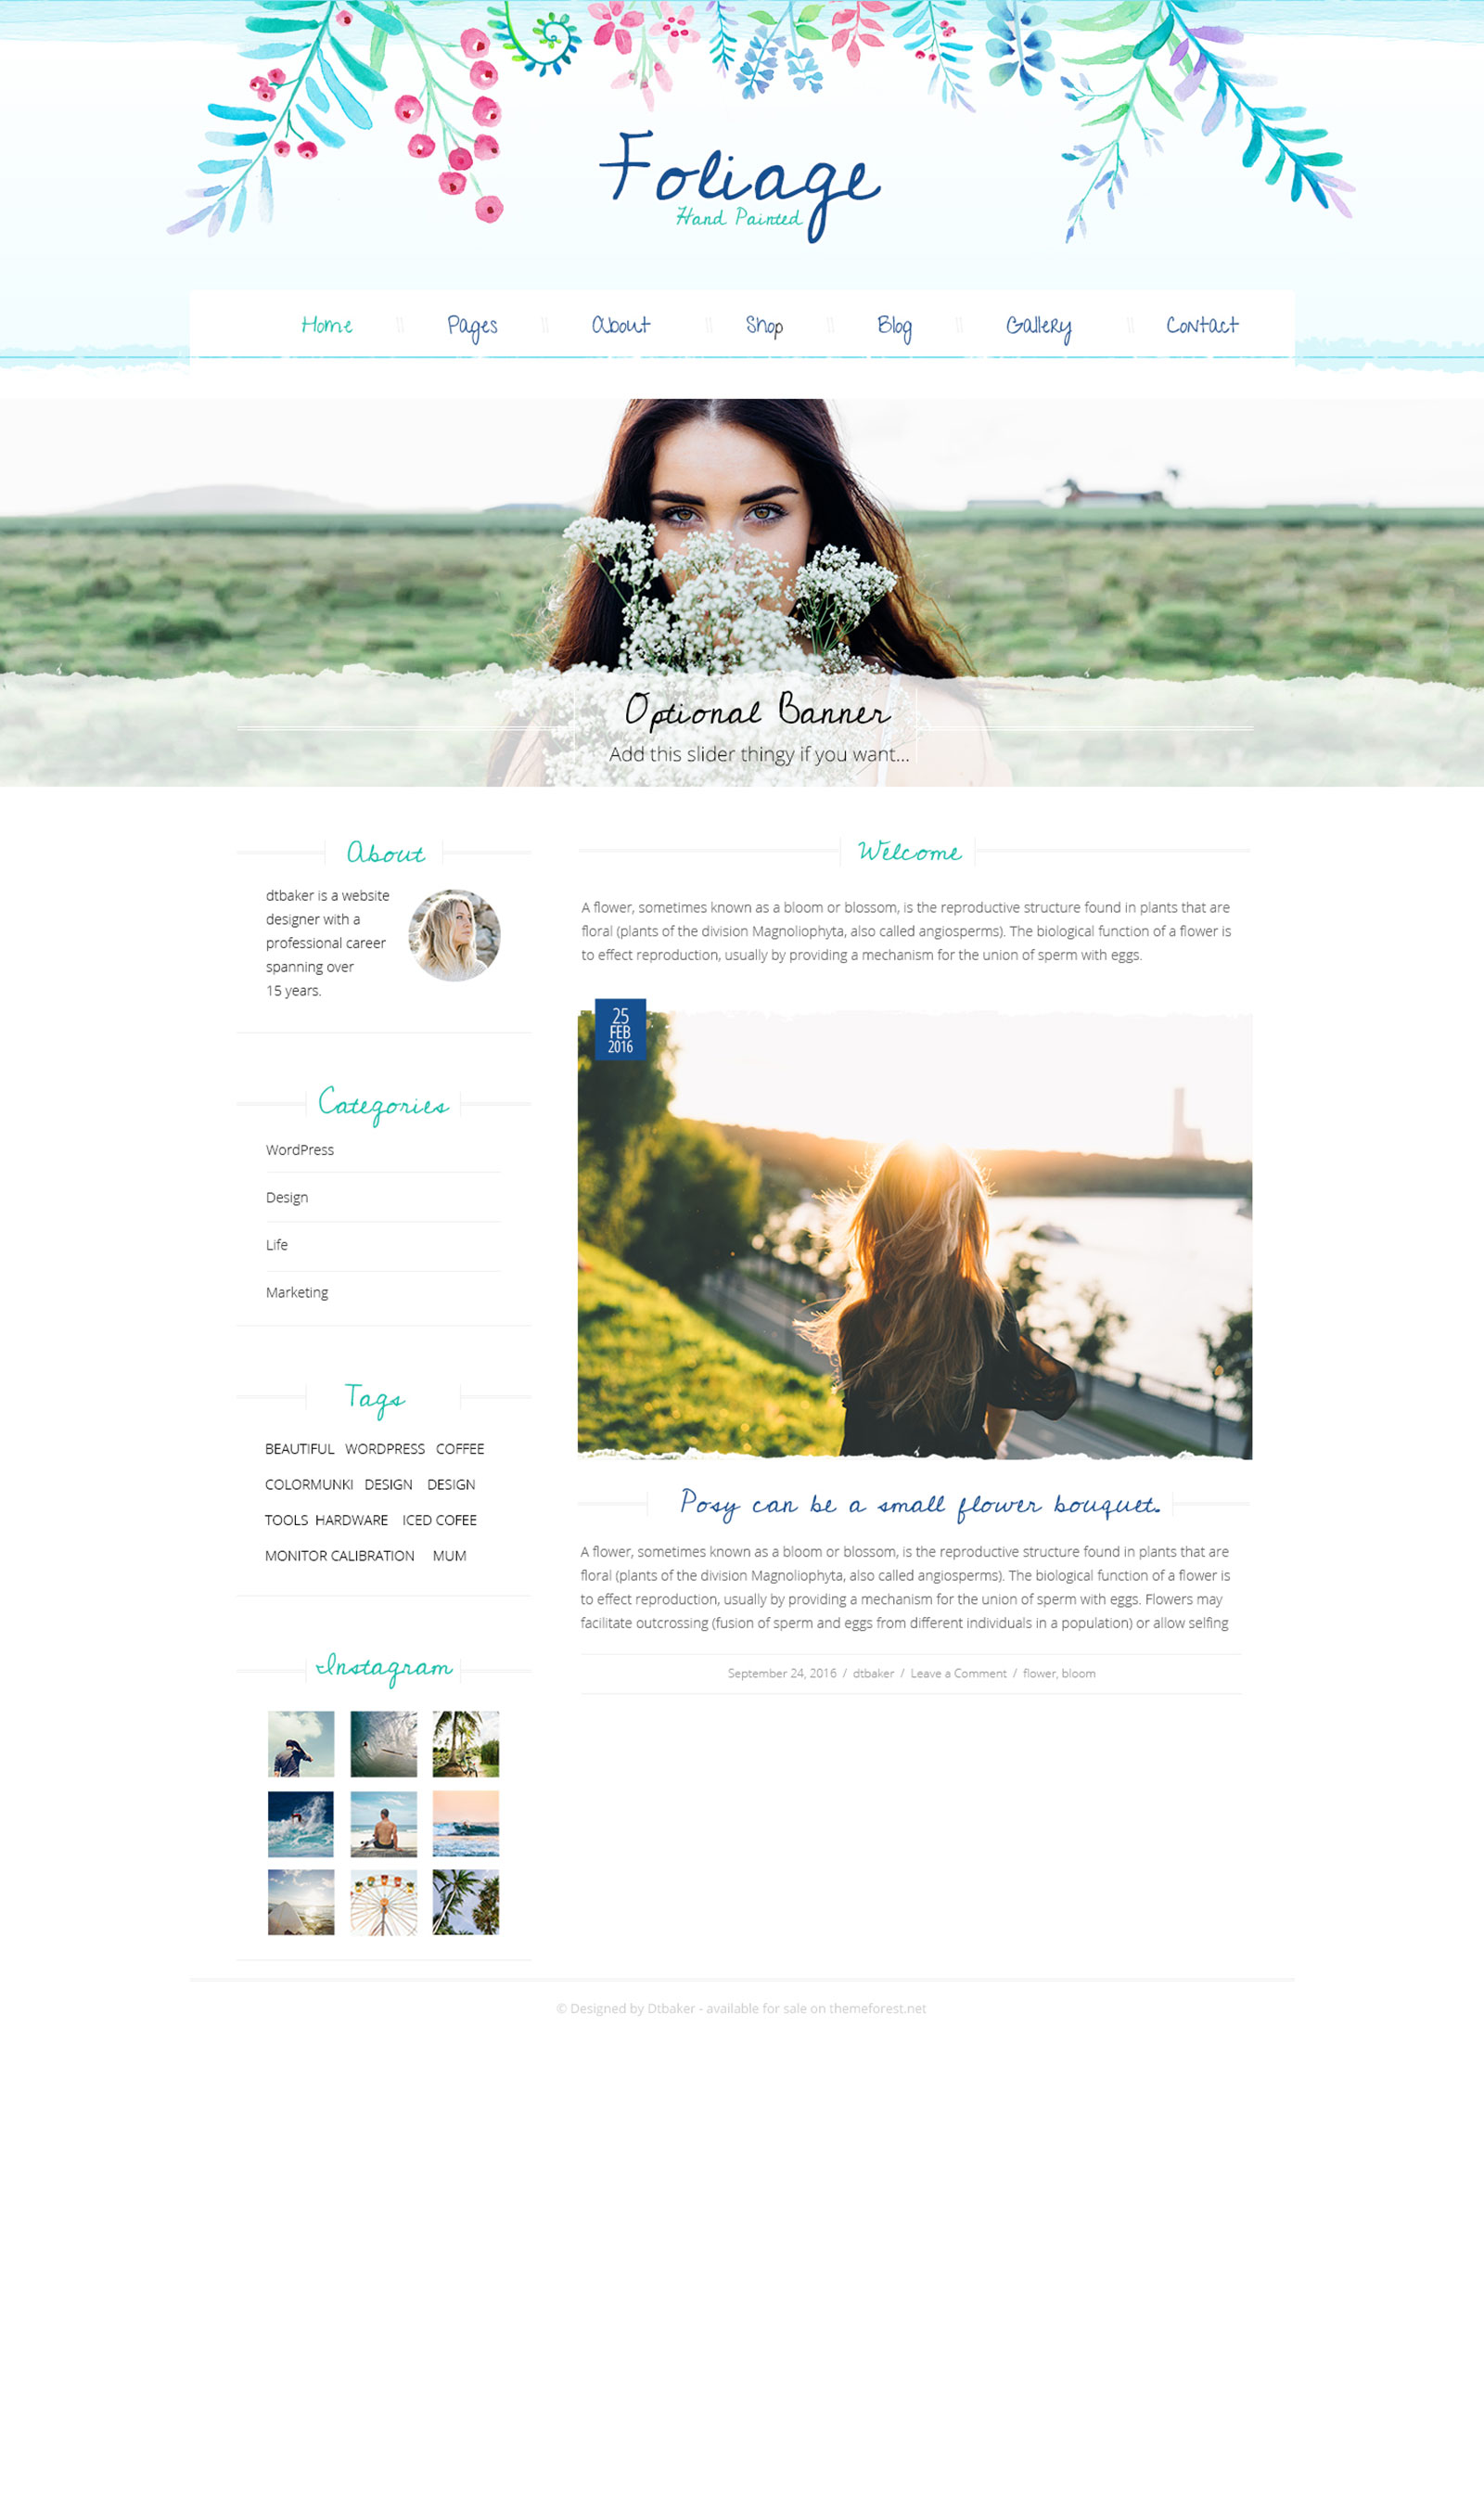 foliage-wp-theme-by-dtbaker